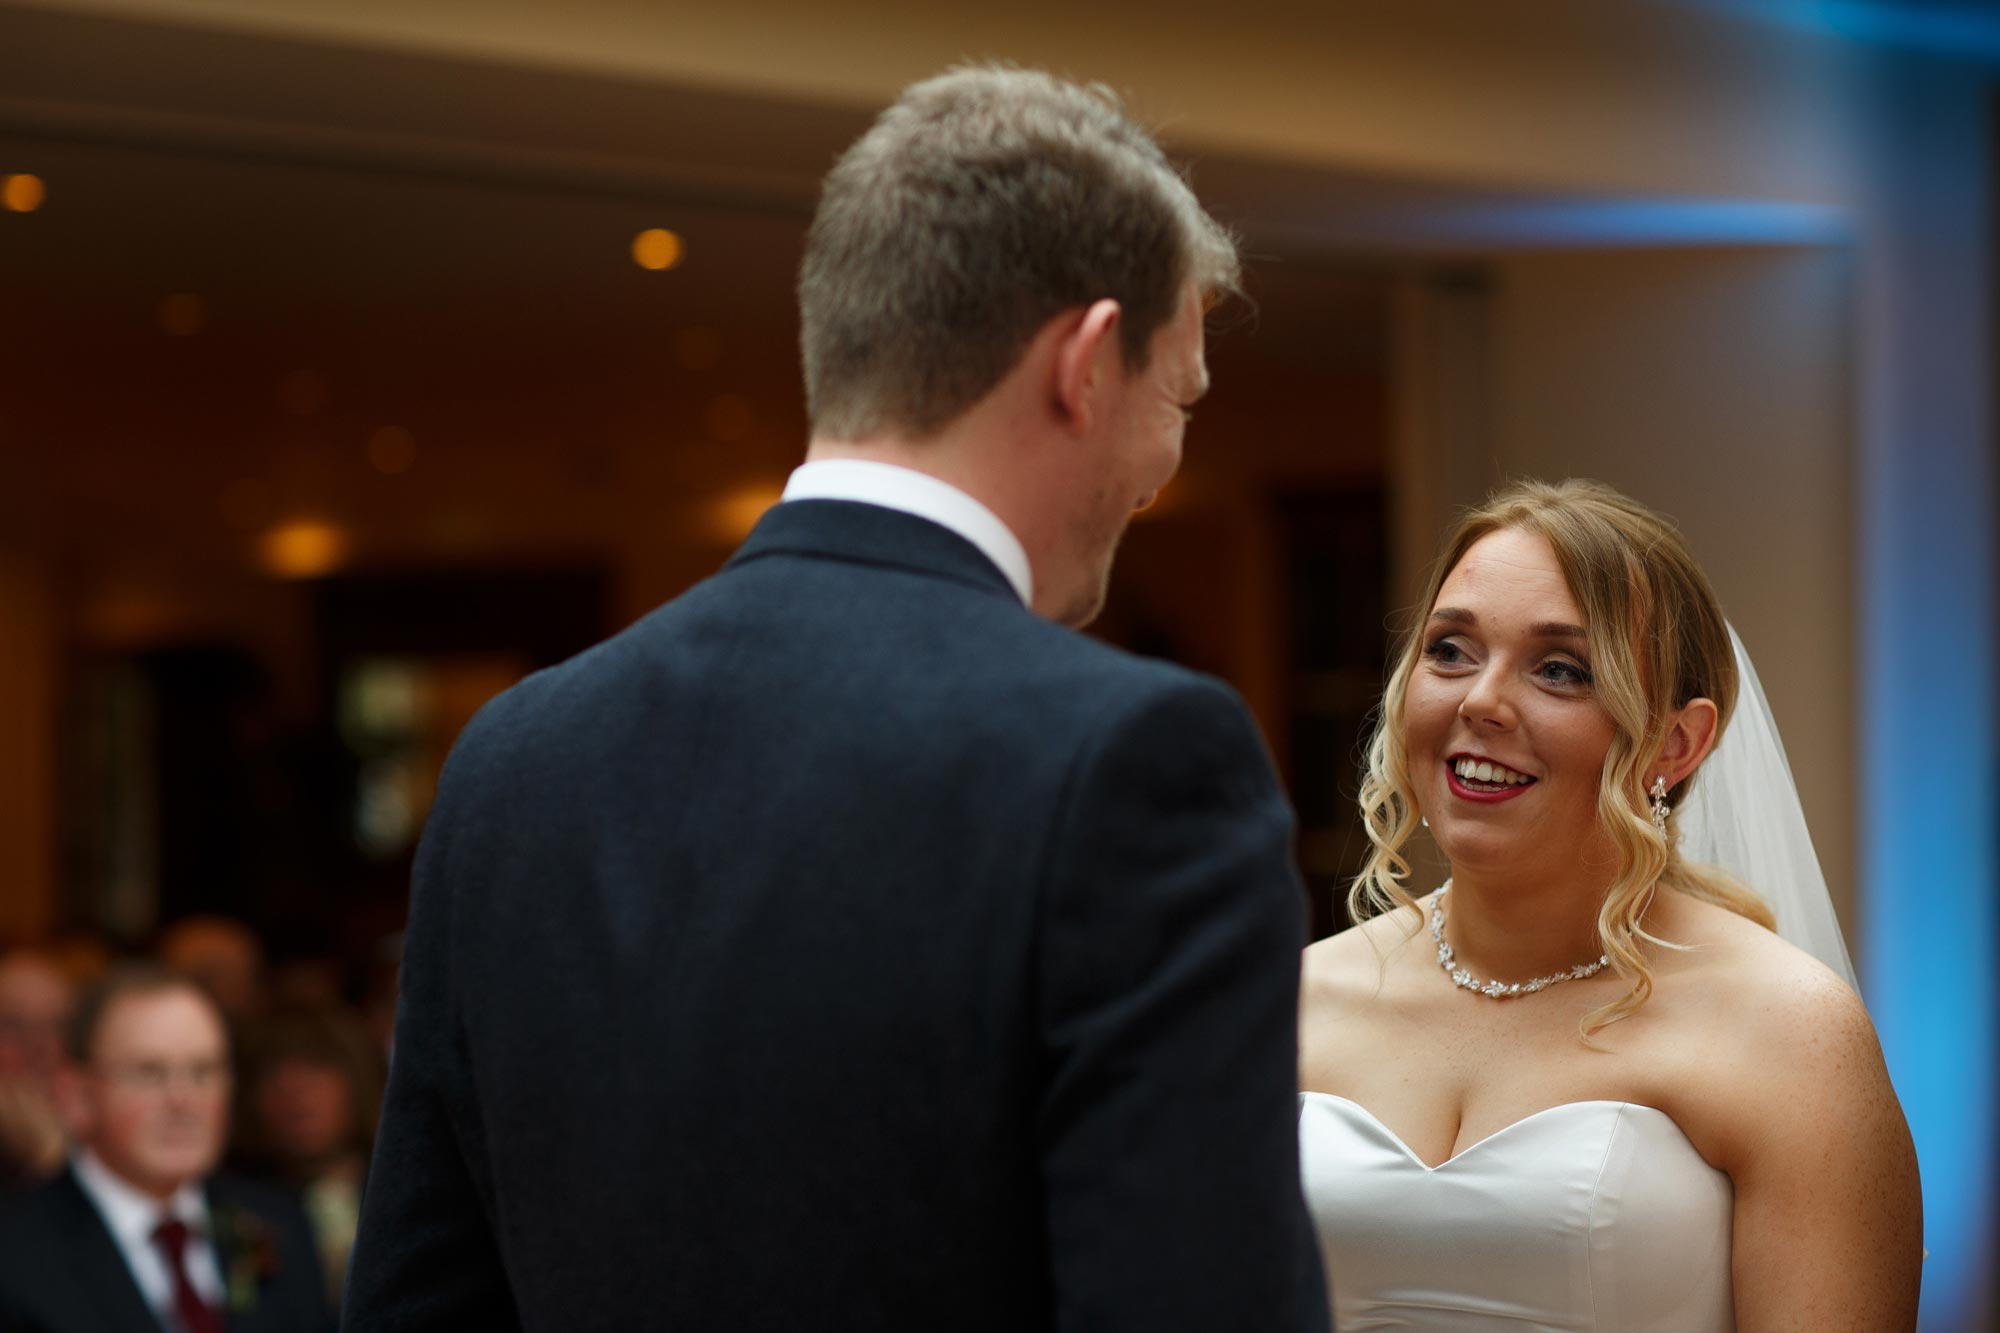 Close up of the Bride and Groom saying their vows inside the conservatory at Mitton Hall